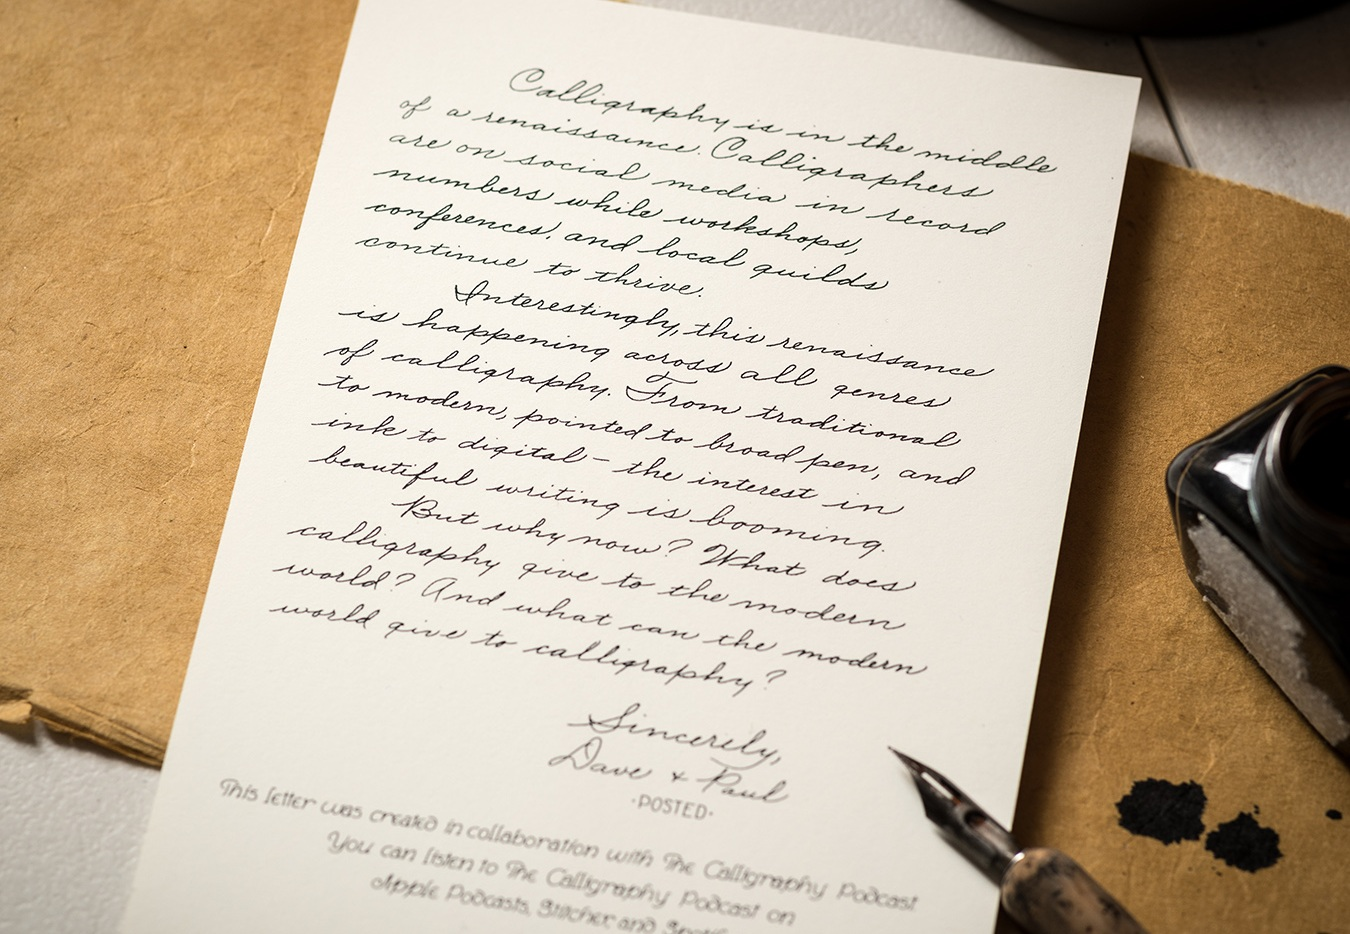 posted-letter-009-calligraphy-1350px-memo.jpg